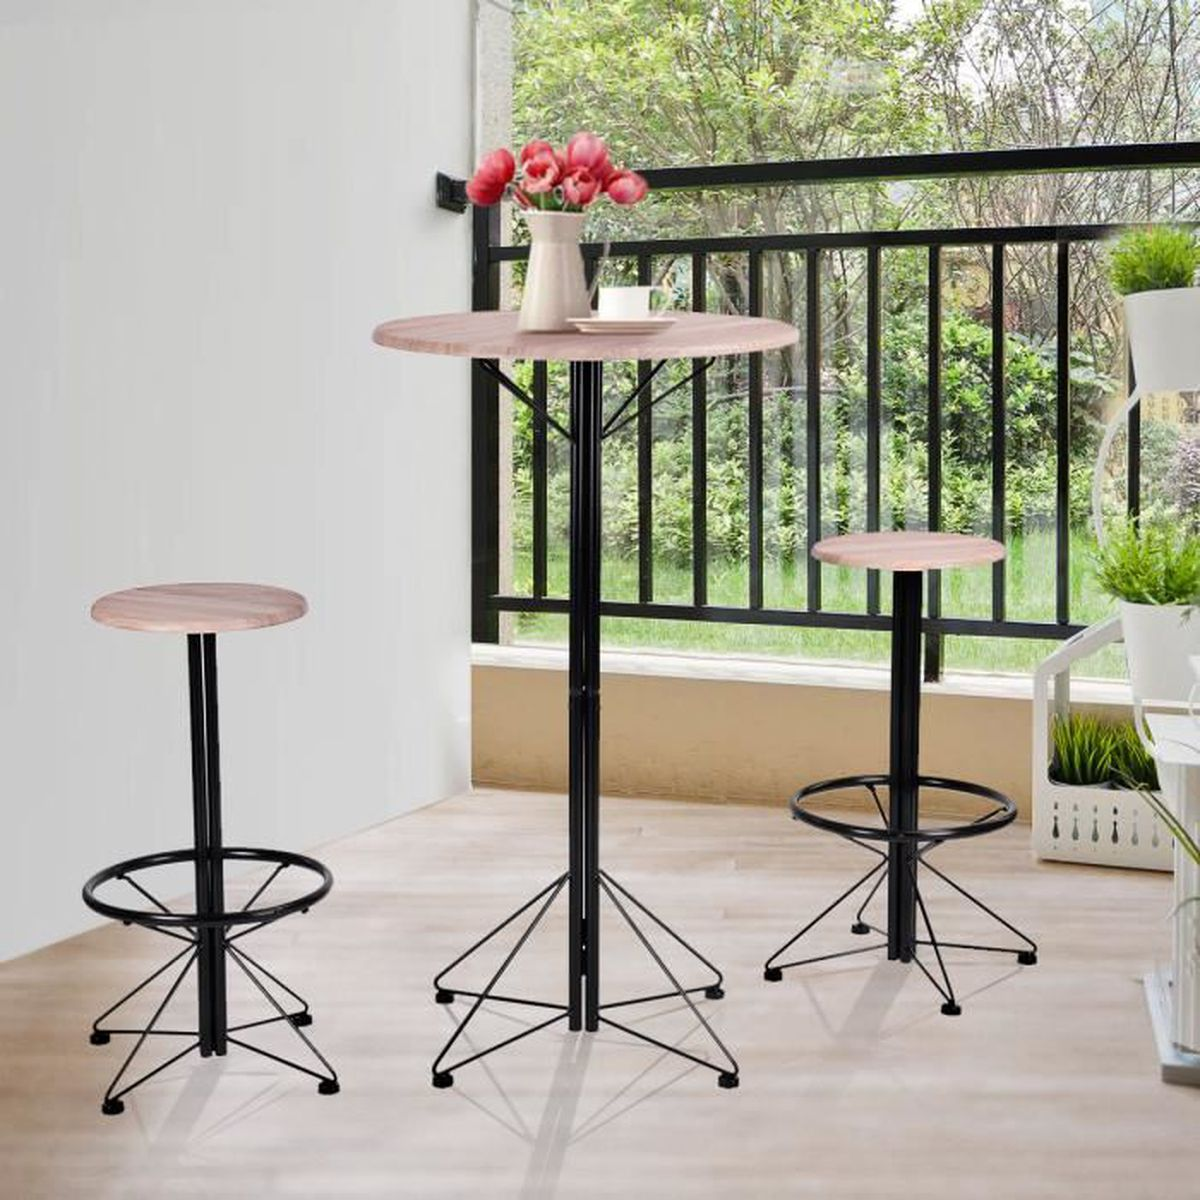 table haute exterieur mange debout achat vente pas cher. Black Bedroom Furniture Sets. Home Design Ideas